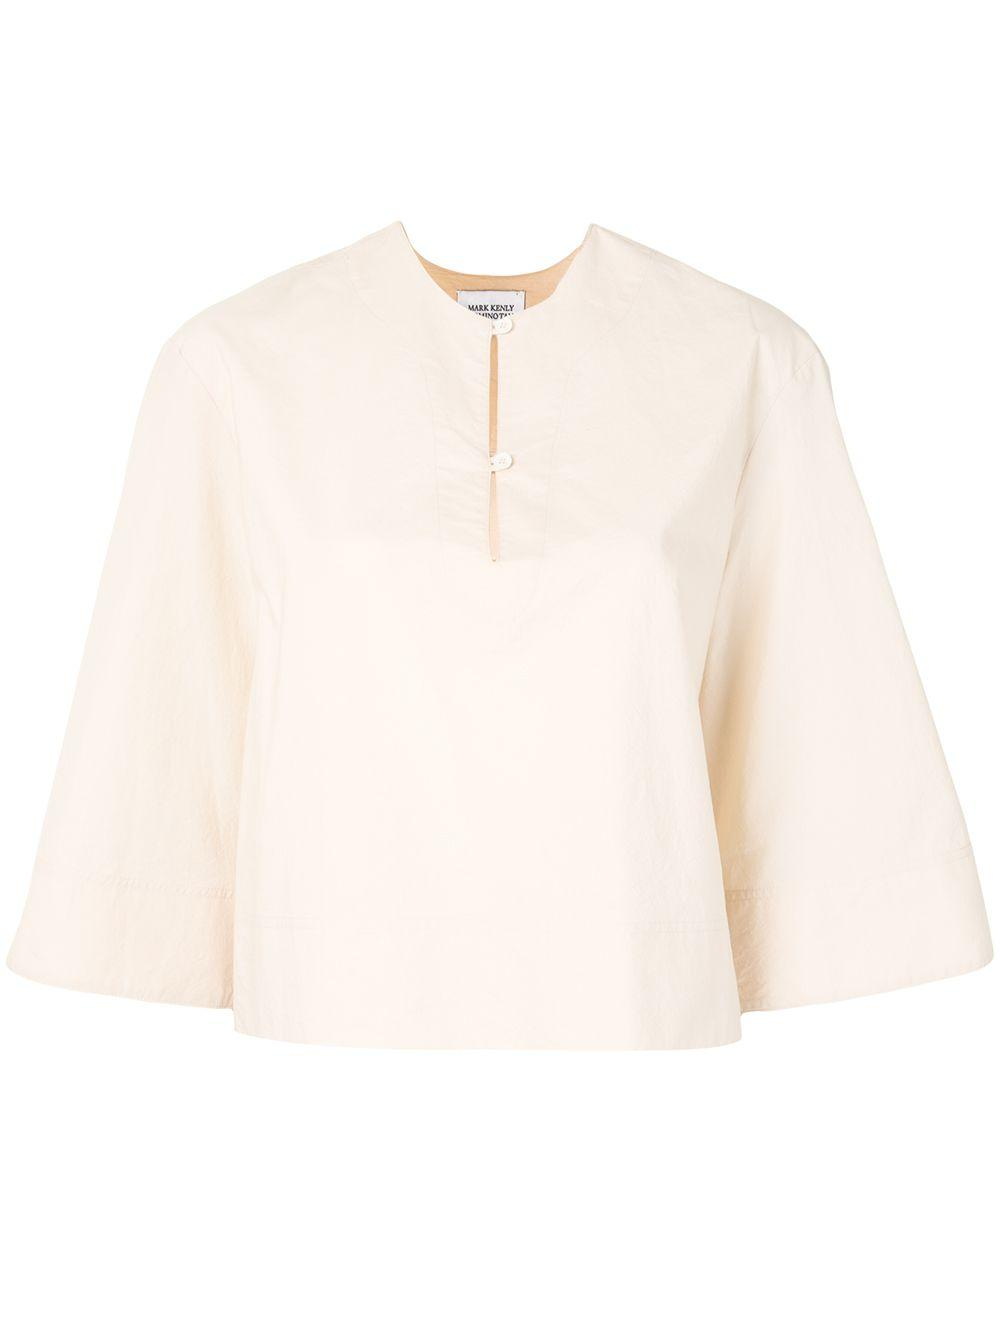 Bia Bell Sleeve Cotton Blouse Item # 1046 01 135 5099